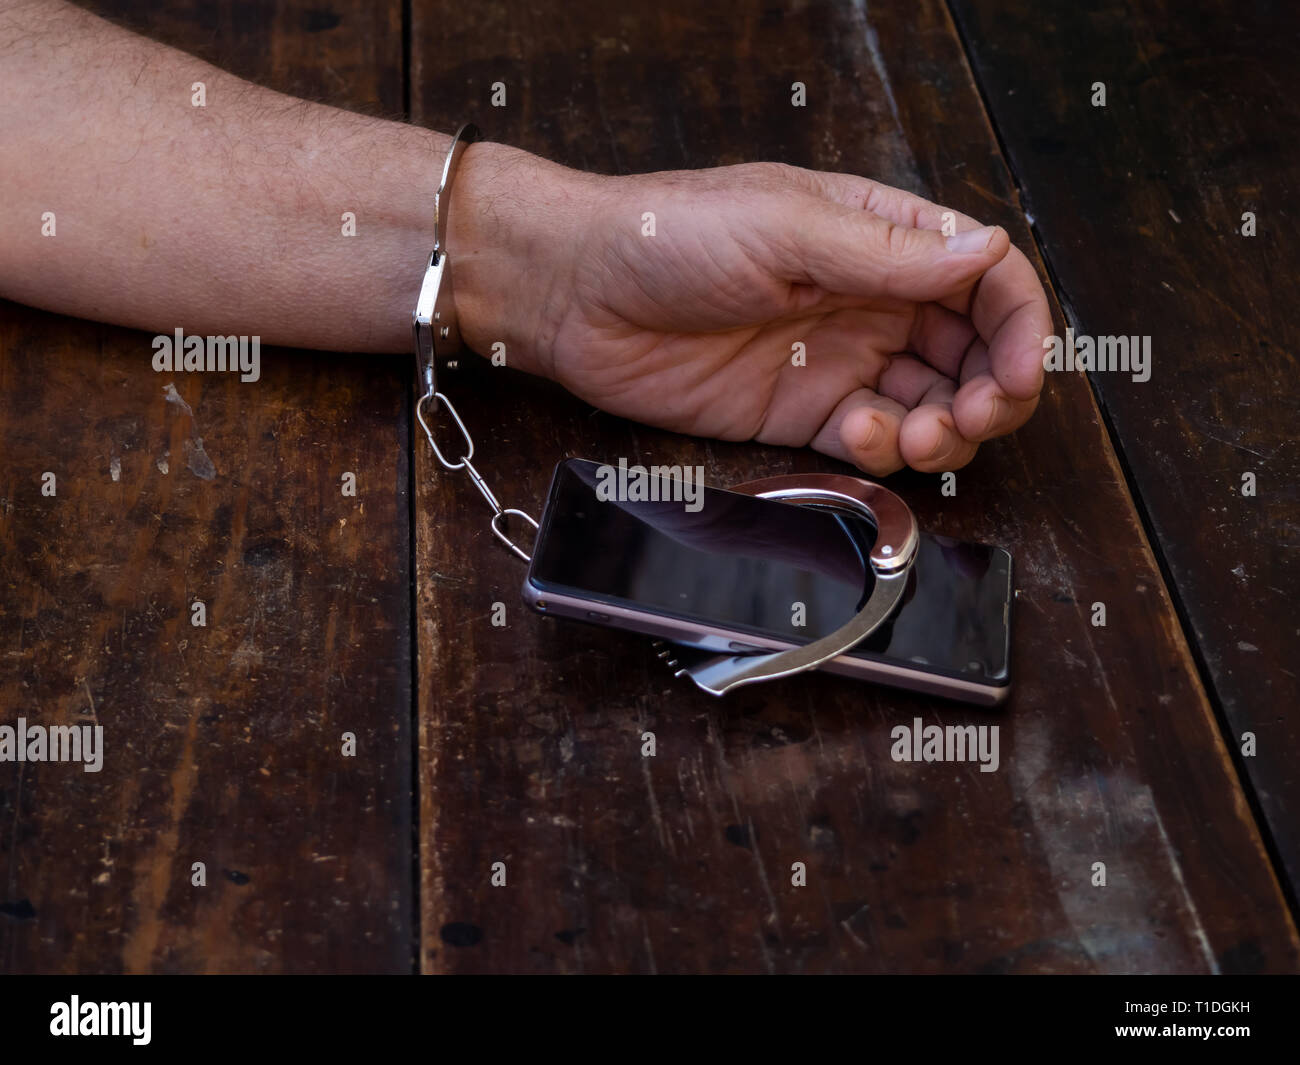 A man handcuffed to a smartphone. Smartphone or internet addiction concept - Stock Image